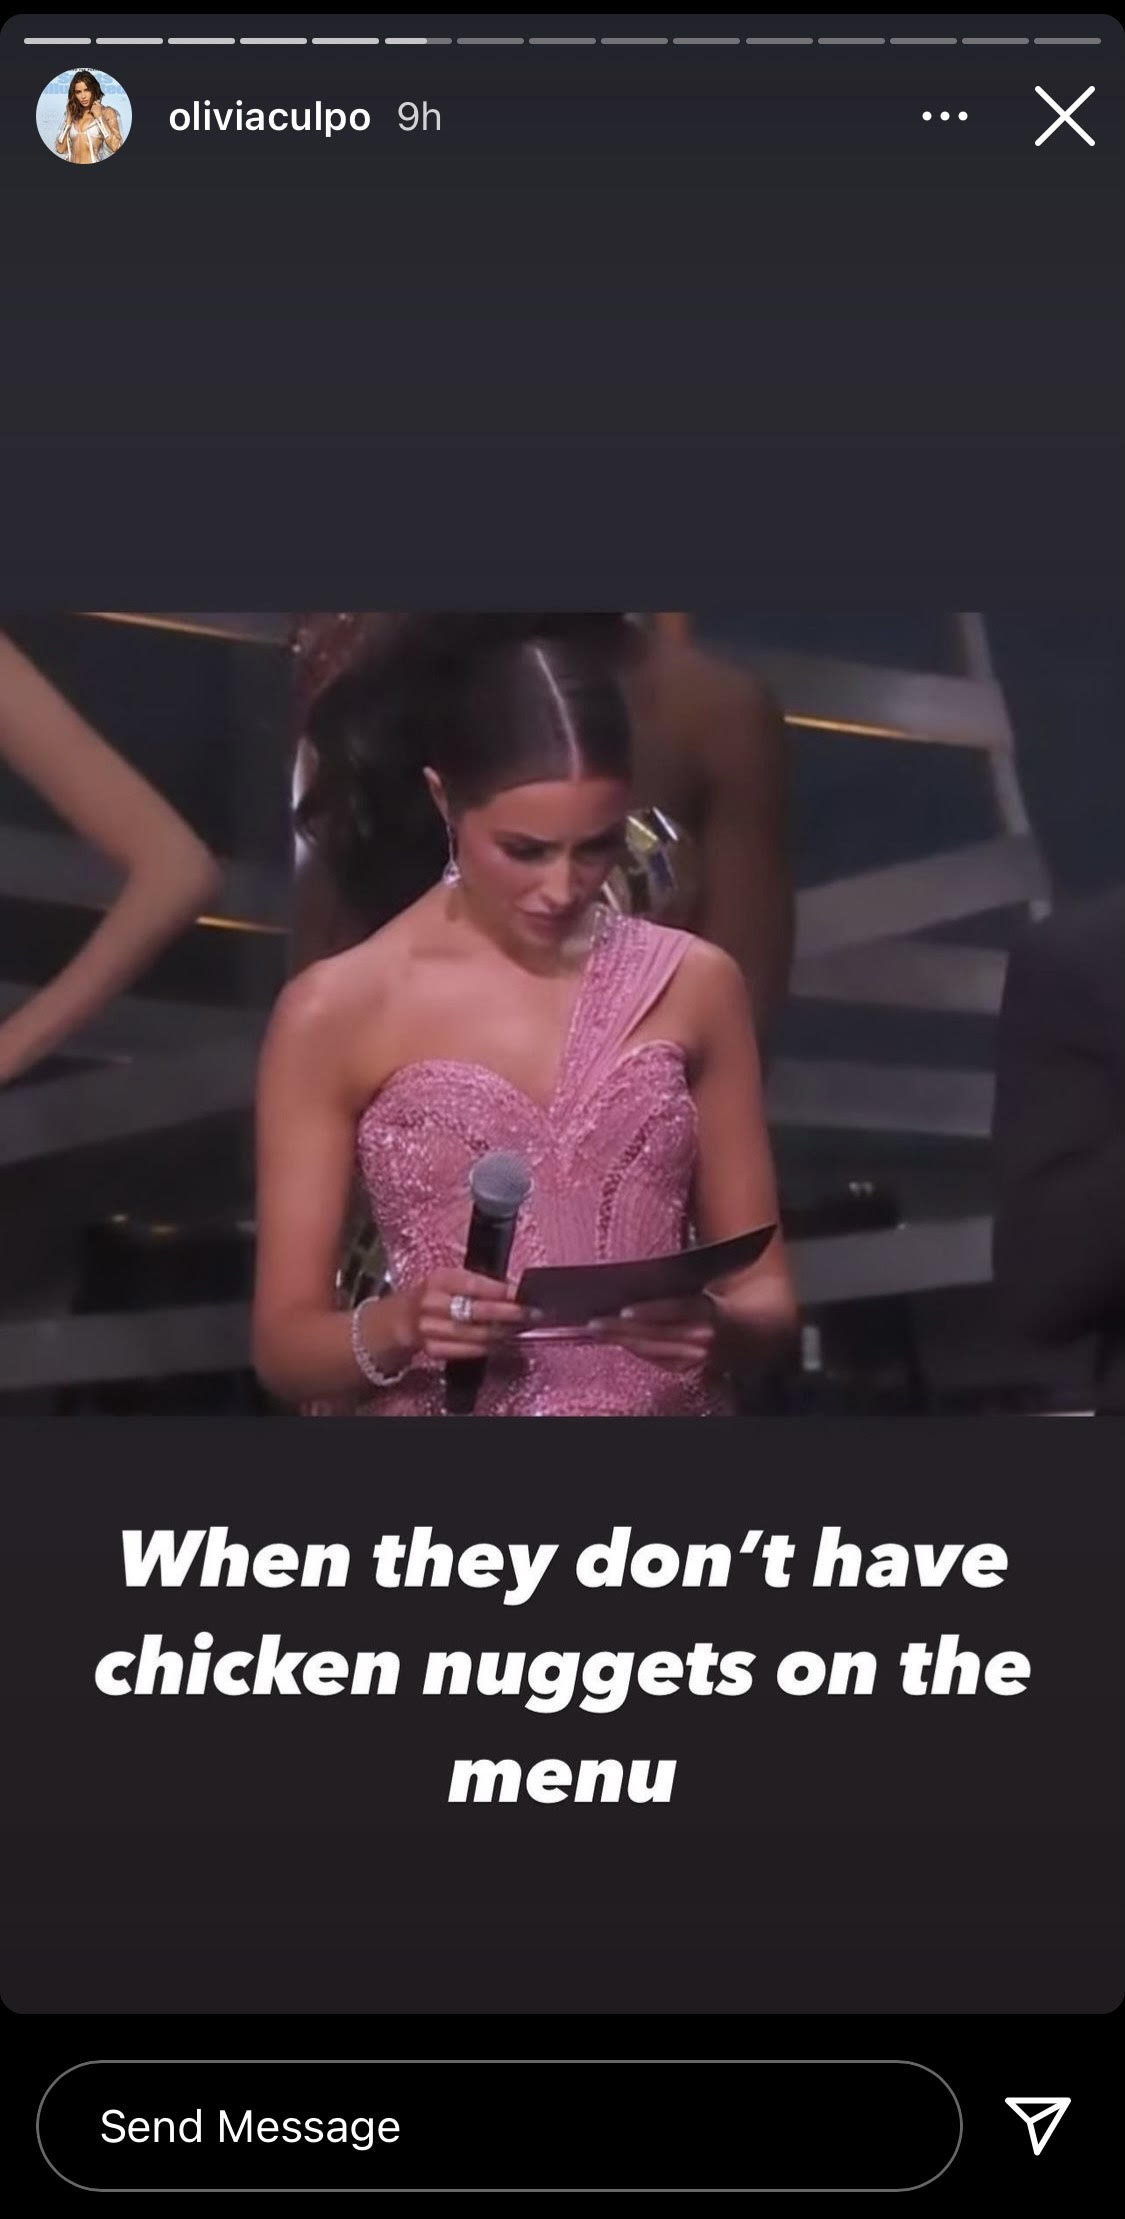 Olivia Culpo creating a meme out of herself about chicken nuggets